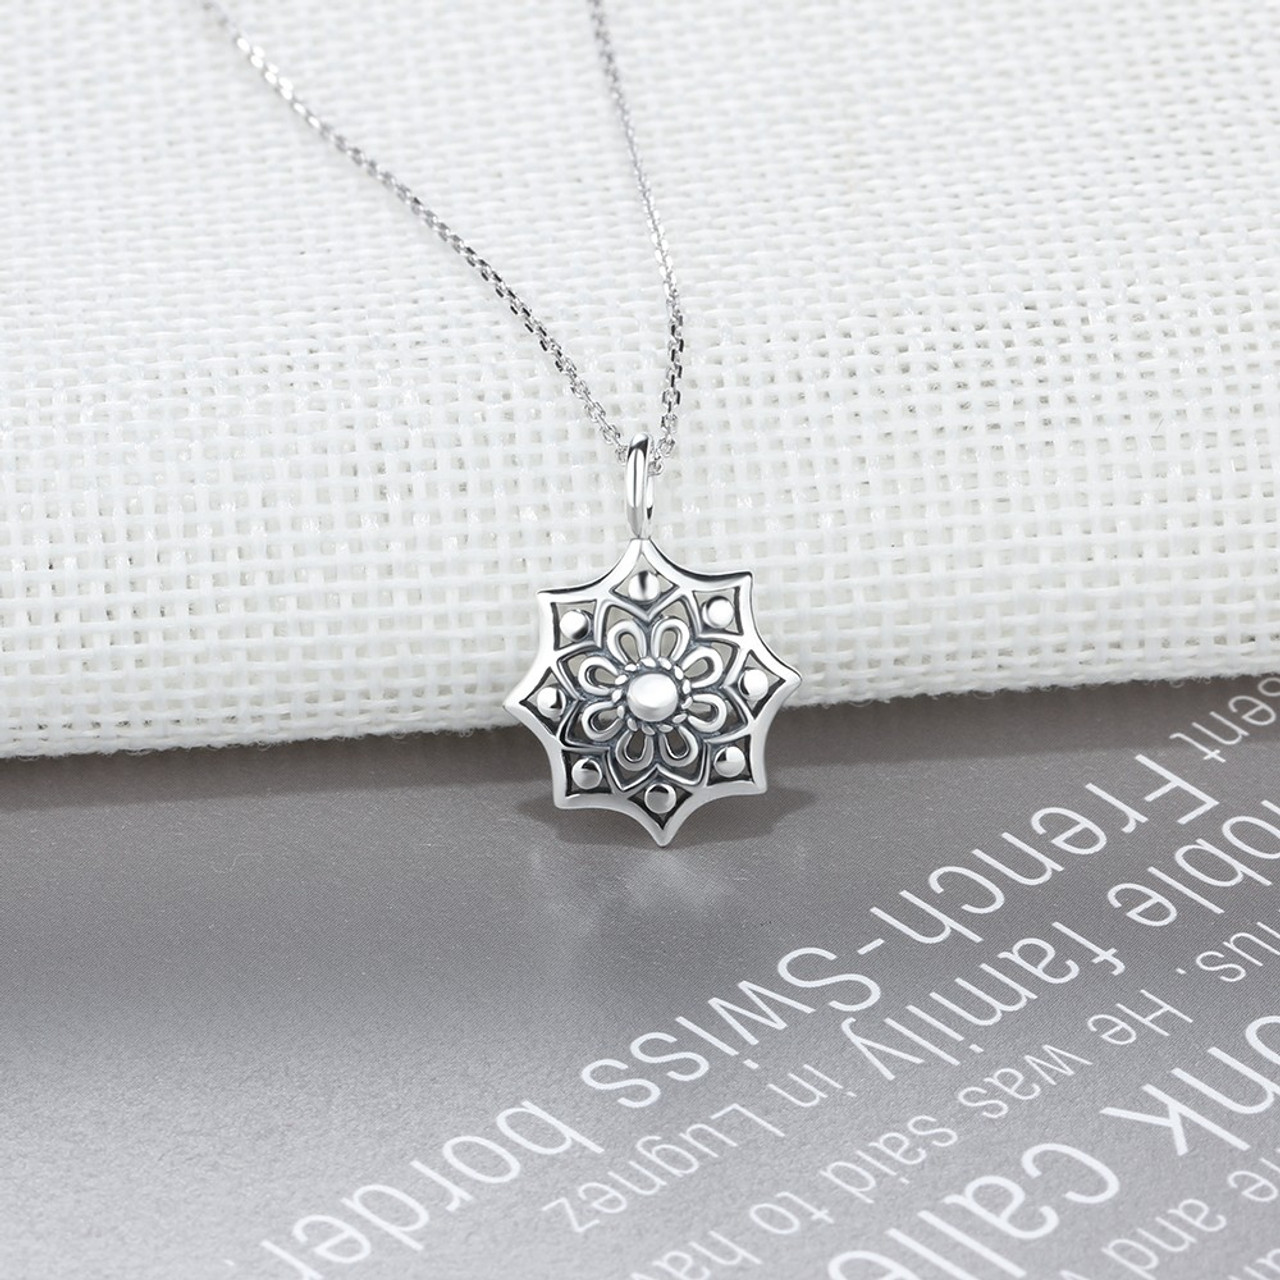 Vintage flower 925 sterling silver necklaces amp pendants punk vintage flower 925 sterling silver necklaces amp pendants punk women fine jewelry birthday gift for aloadofball Images